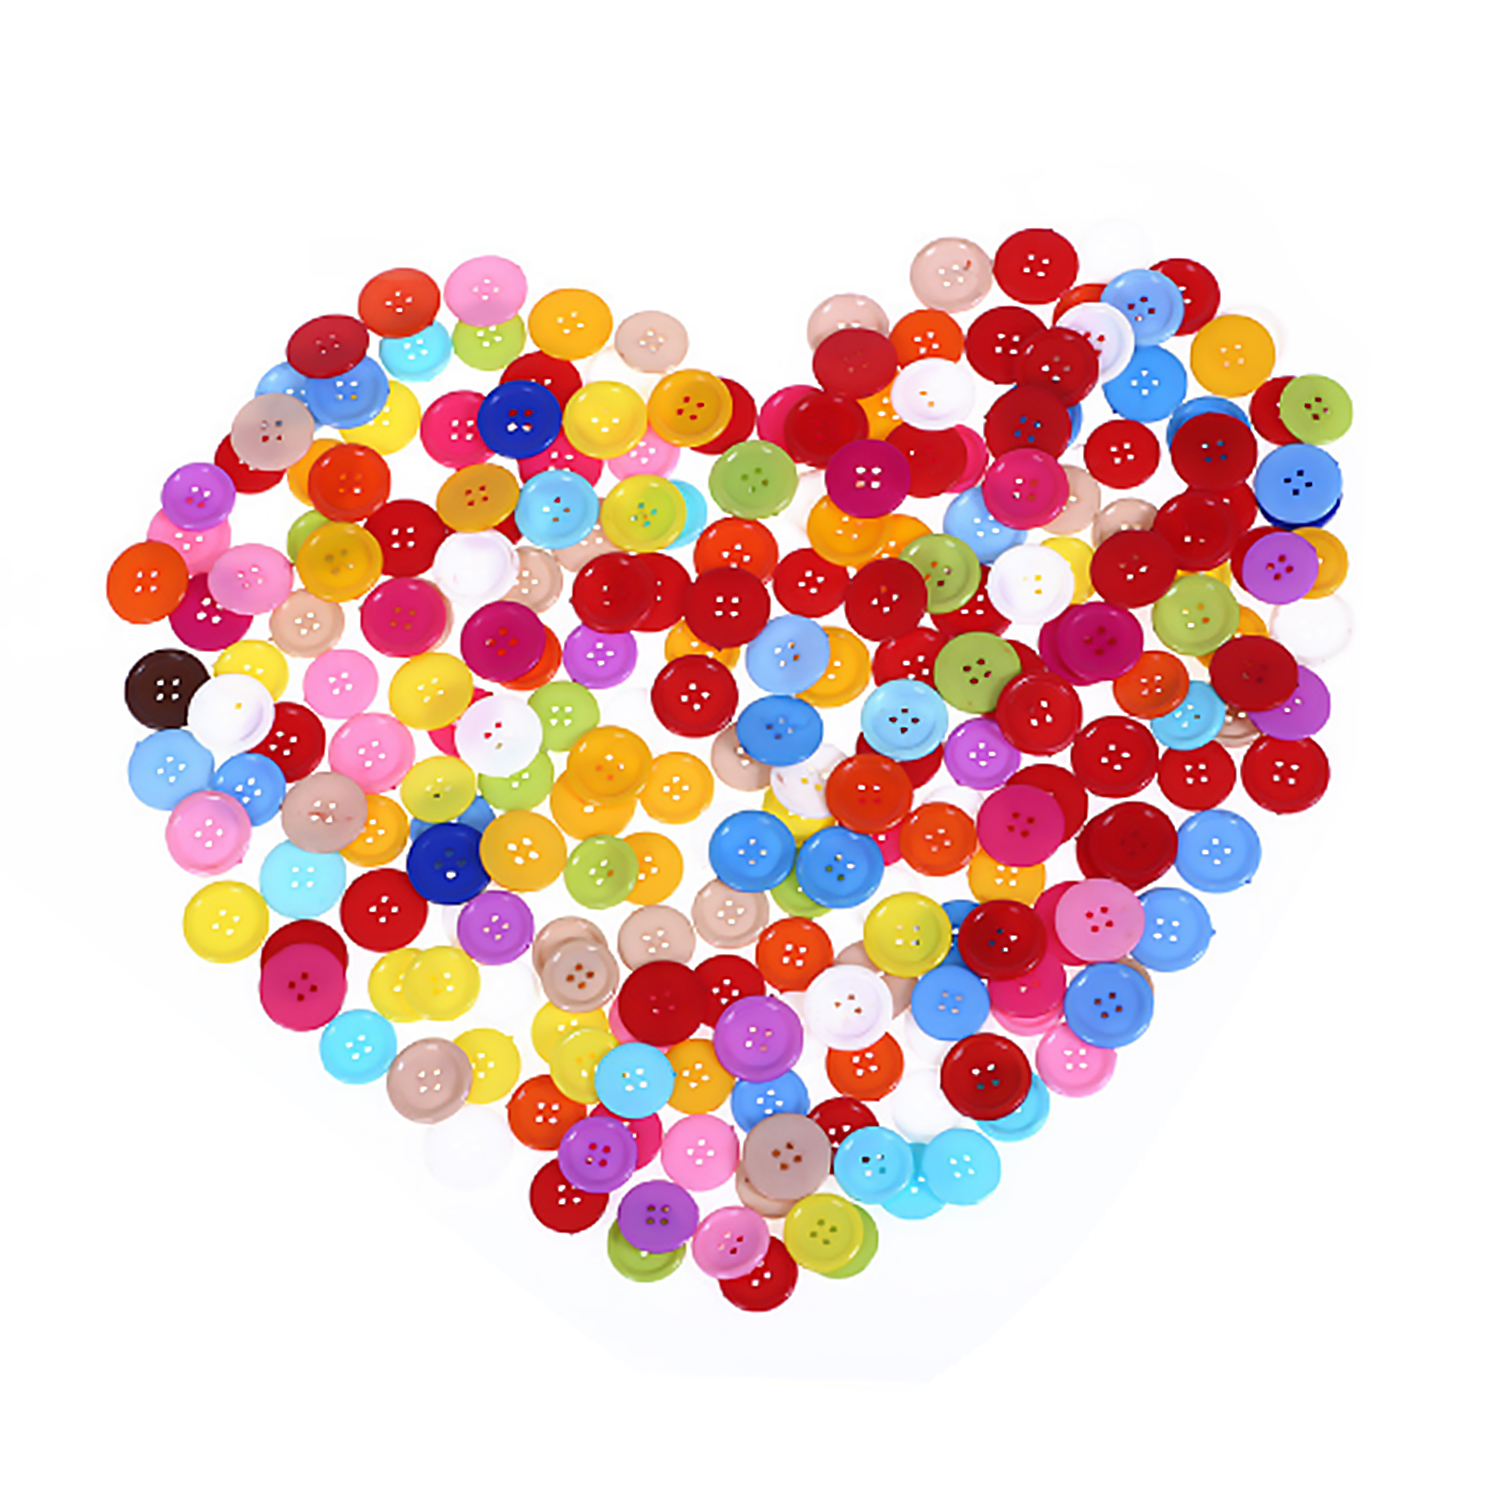 100PCS Assorted Color 2-Hole Round Plastic Buttons For Kids Children Knitting Clothes Sewing DIY Crafts Collections Scrapbooking